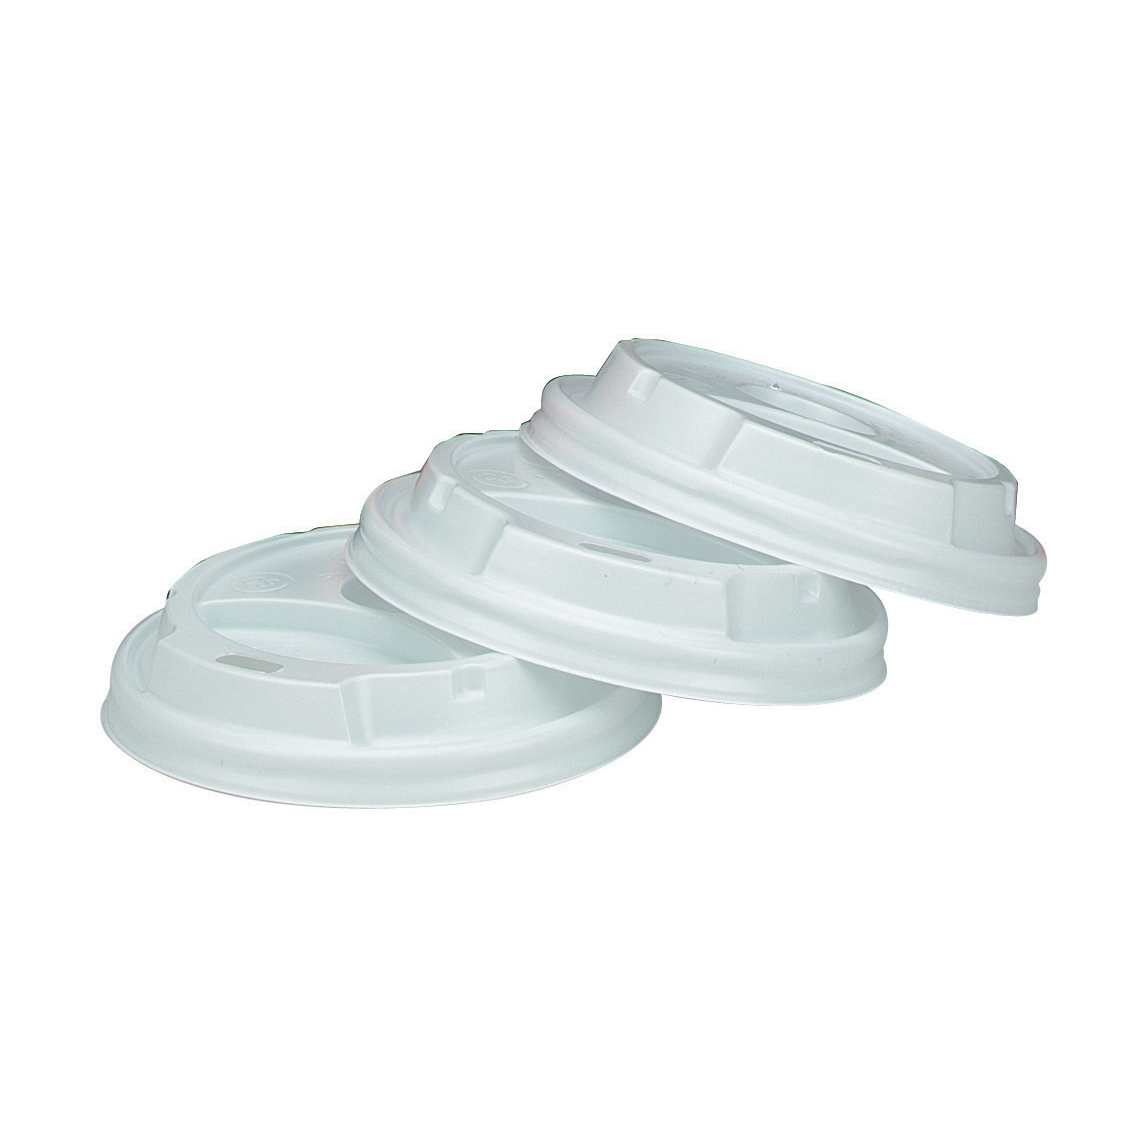 Disposable Sip Thru Lids For Use With 8oz 236ml Ripple Cups White Ref 0511054 Pack 100